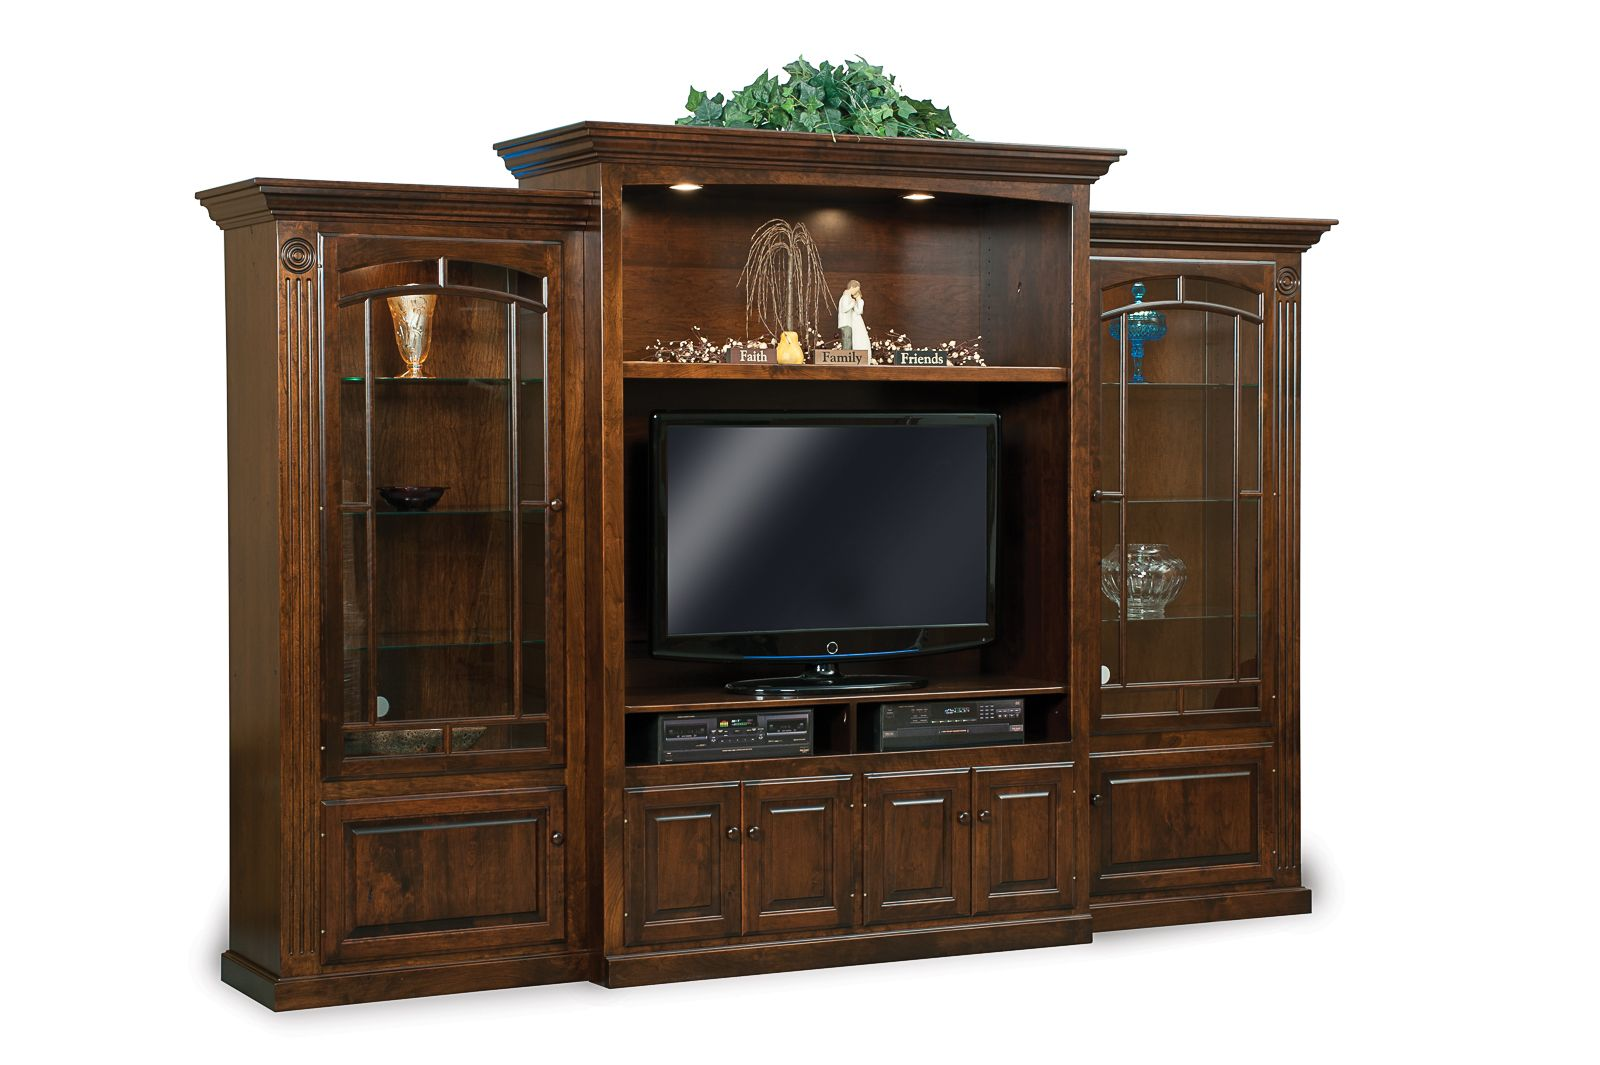 entertainment centers living room furniture amish oak in texas meubles d amish